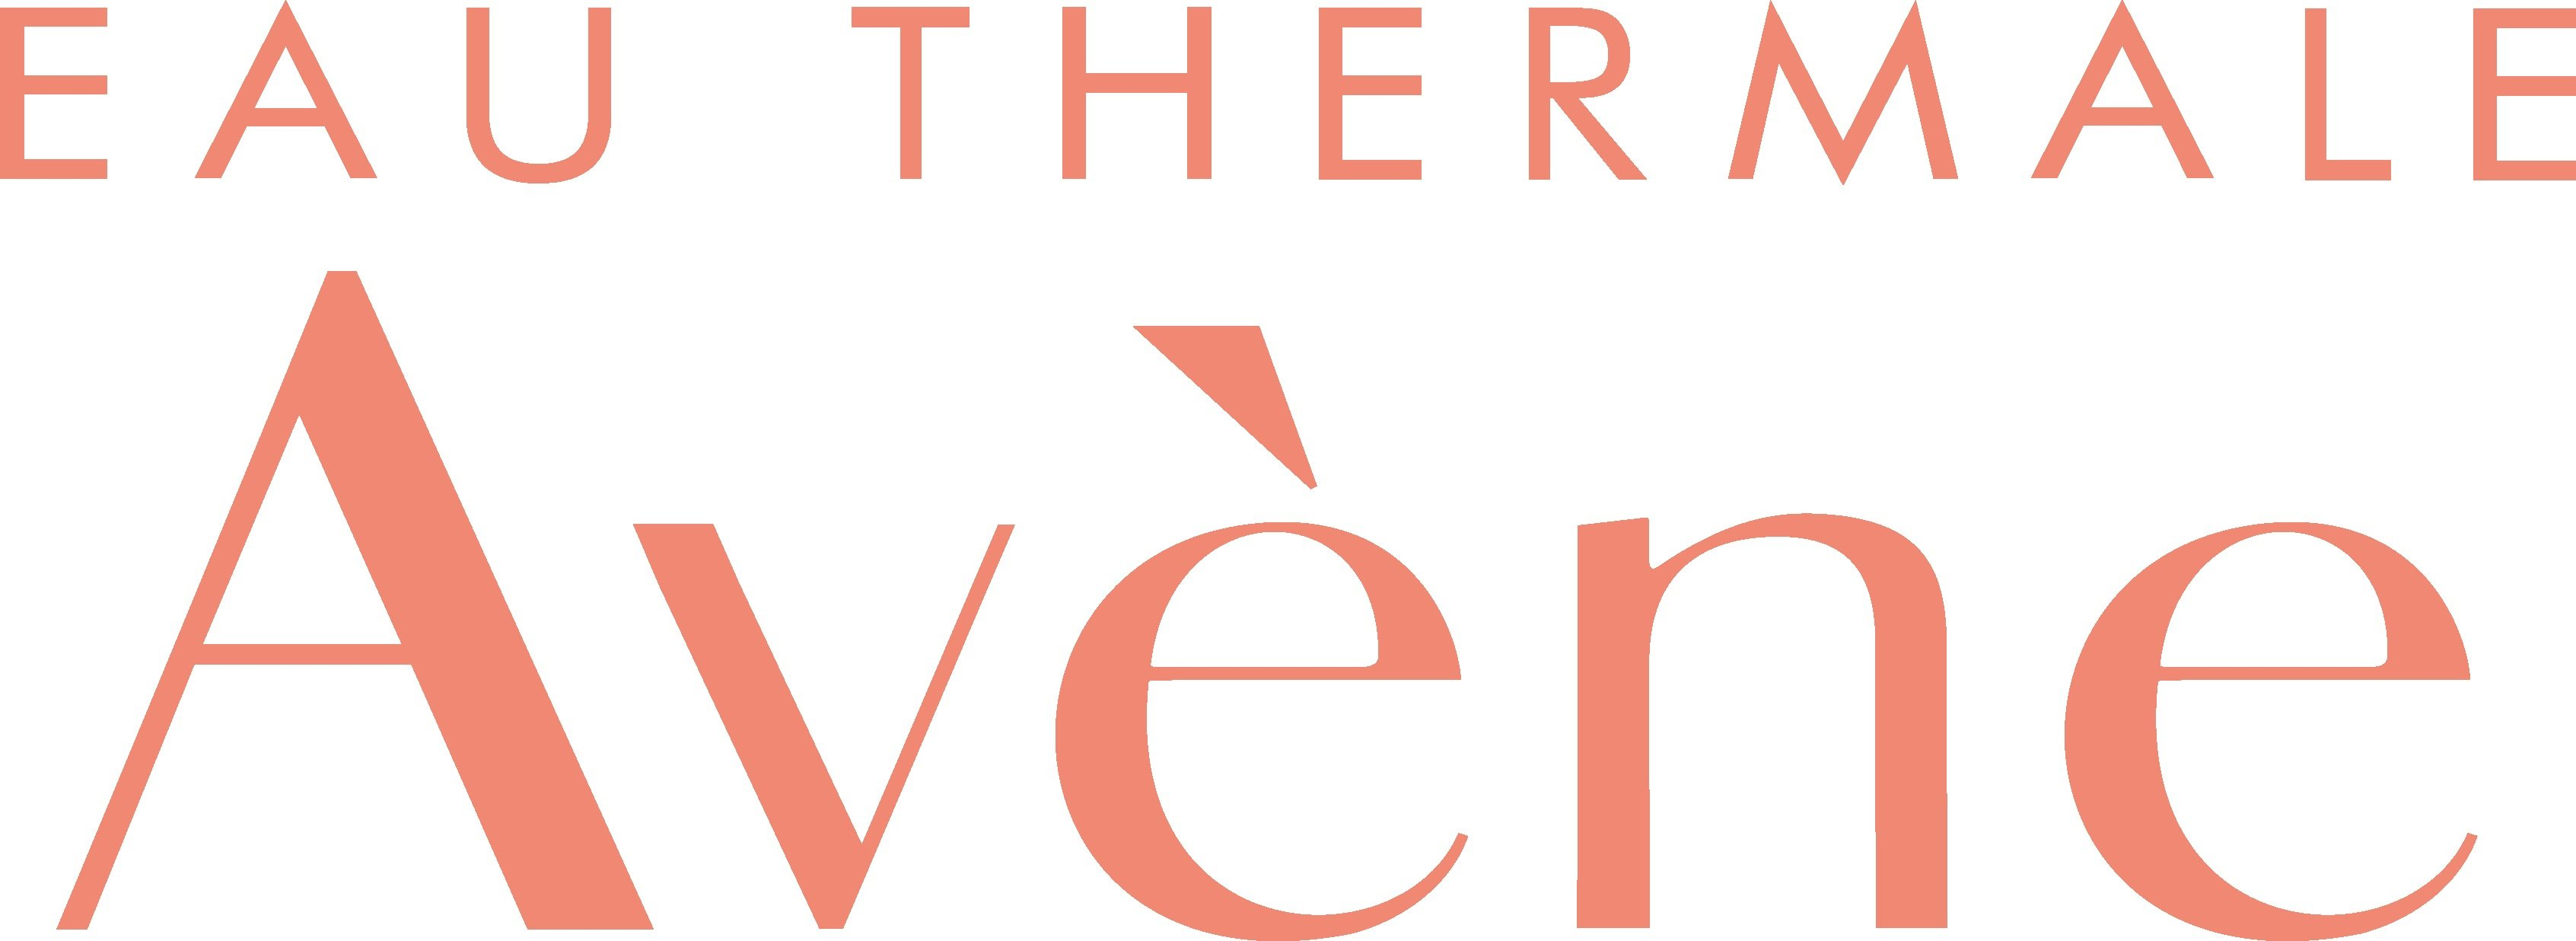 https://www.eau-thermale-avene.es/